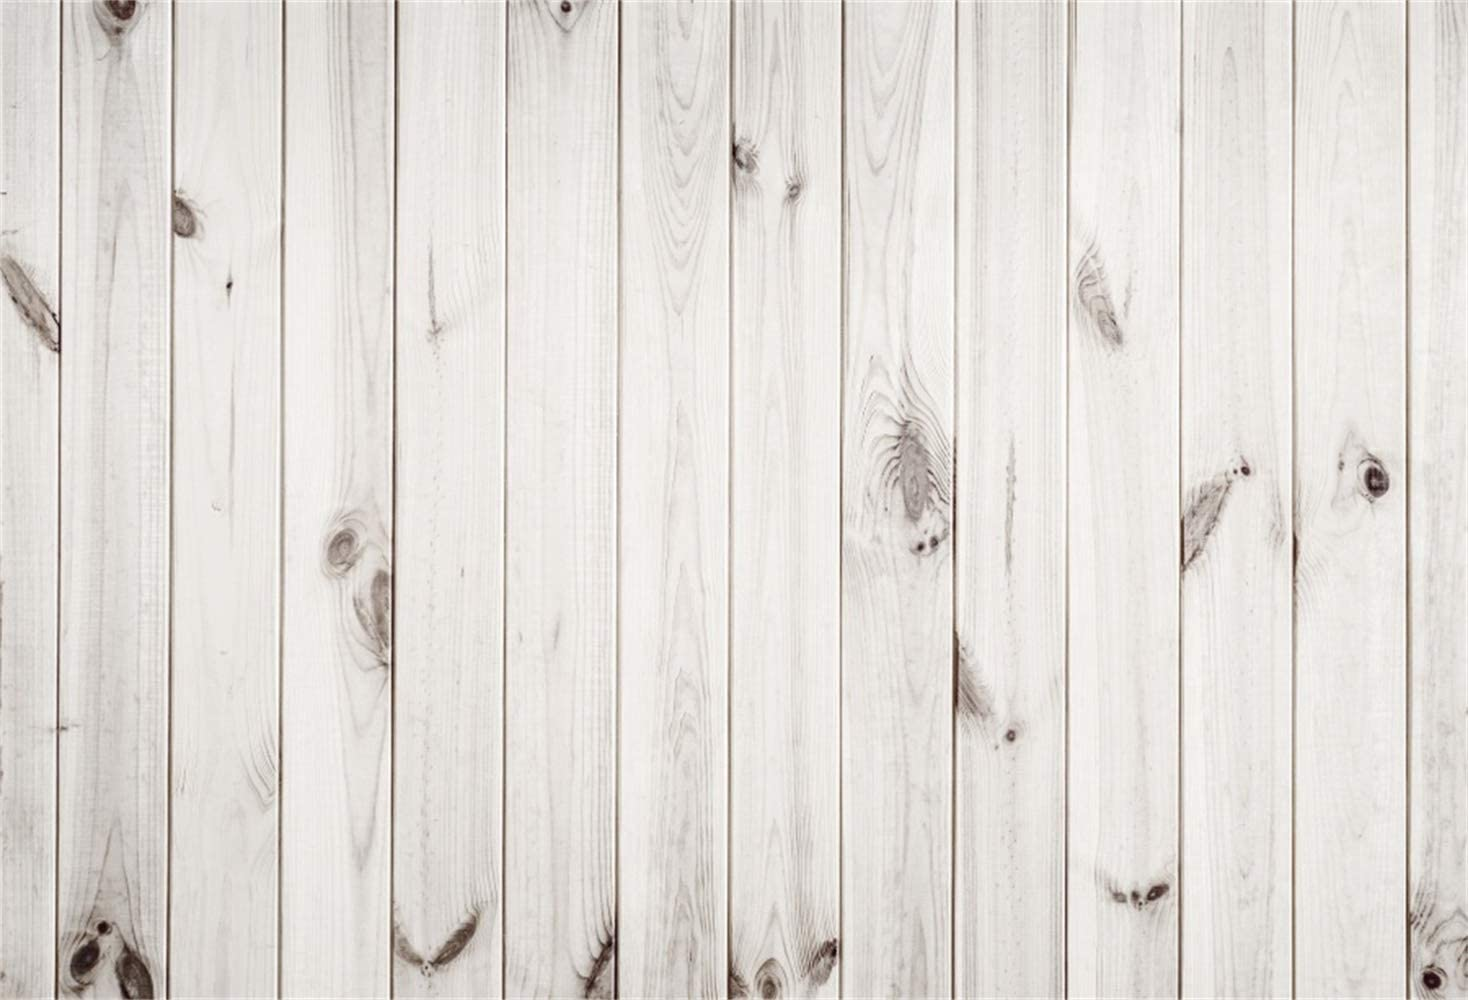 10x7ft Grunge Wood Texture Board Backdrop Vinyl Old Faded Weathered Vertical Striped Wood Plank Background Child Adult Artistic Portrait Kid Clothes Dolls Toys Shoot Studio